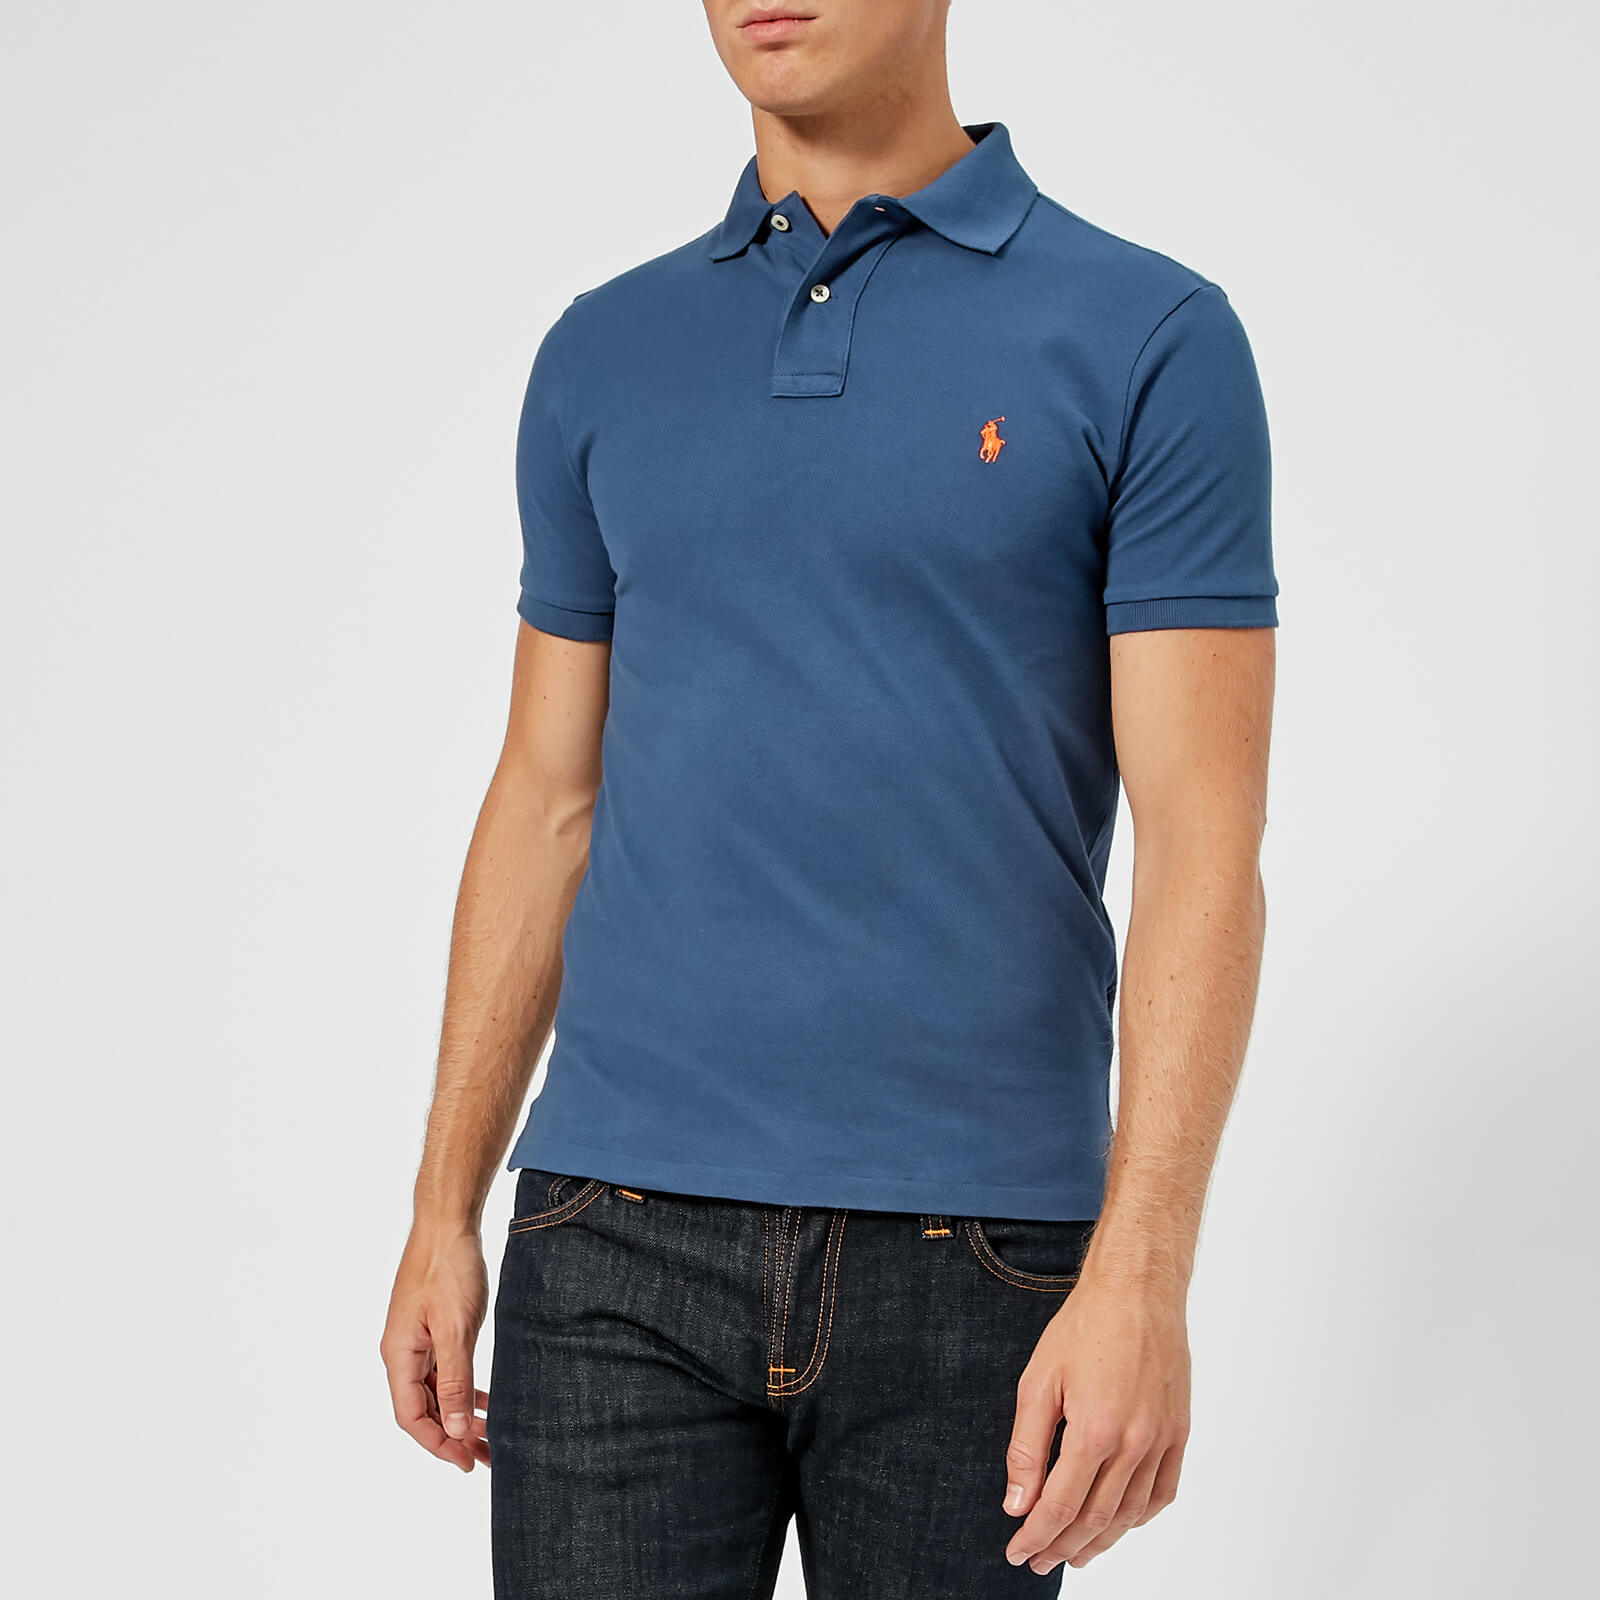 2cd20f5a Polo Ralph Lauren Men's Slim Fit Mesh Polo Shirt - Light Navy - Free UK  Delivery over £50